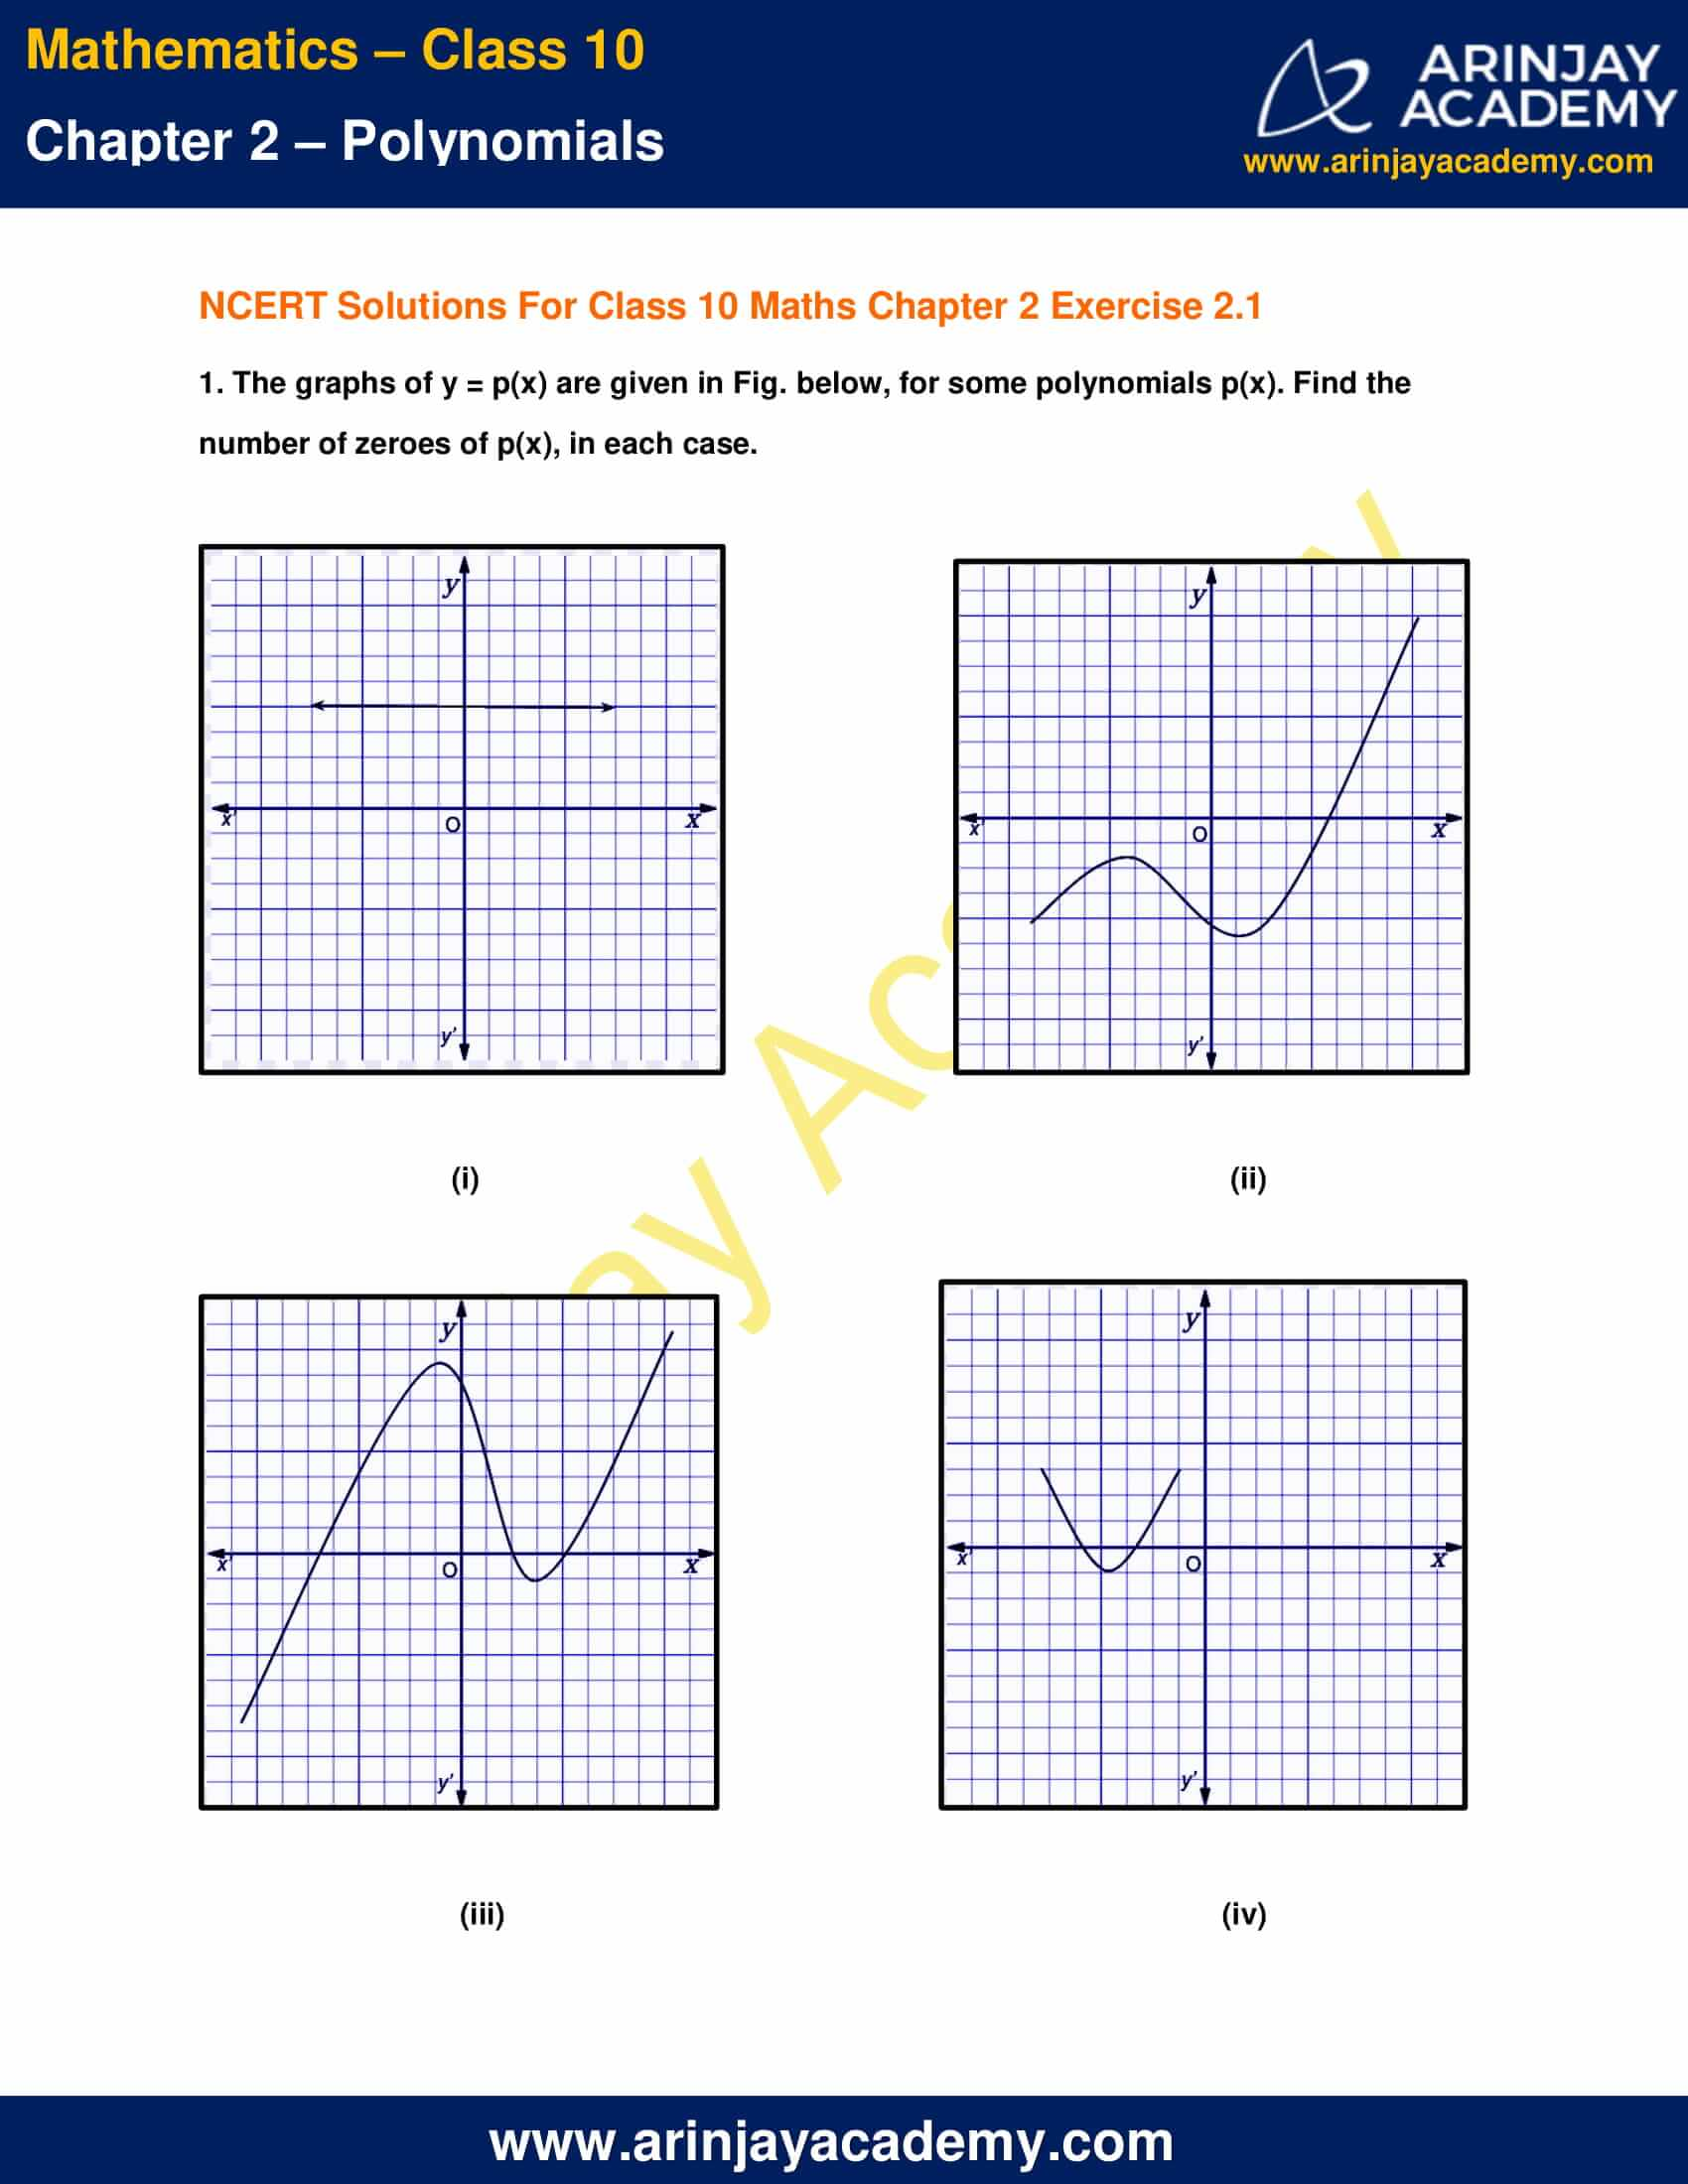 NCERT Solutions For Class 10 Maths Chapter 2 Exercise 2.1 part 1